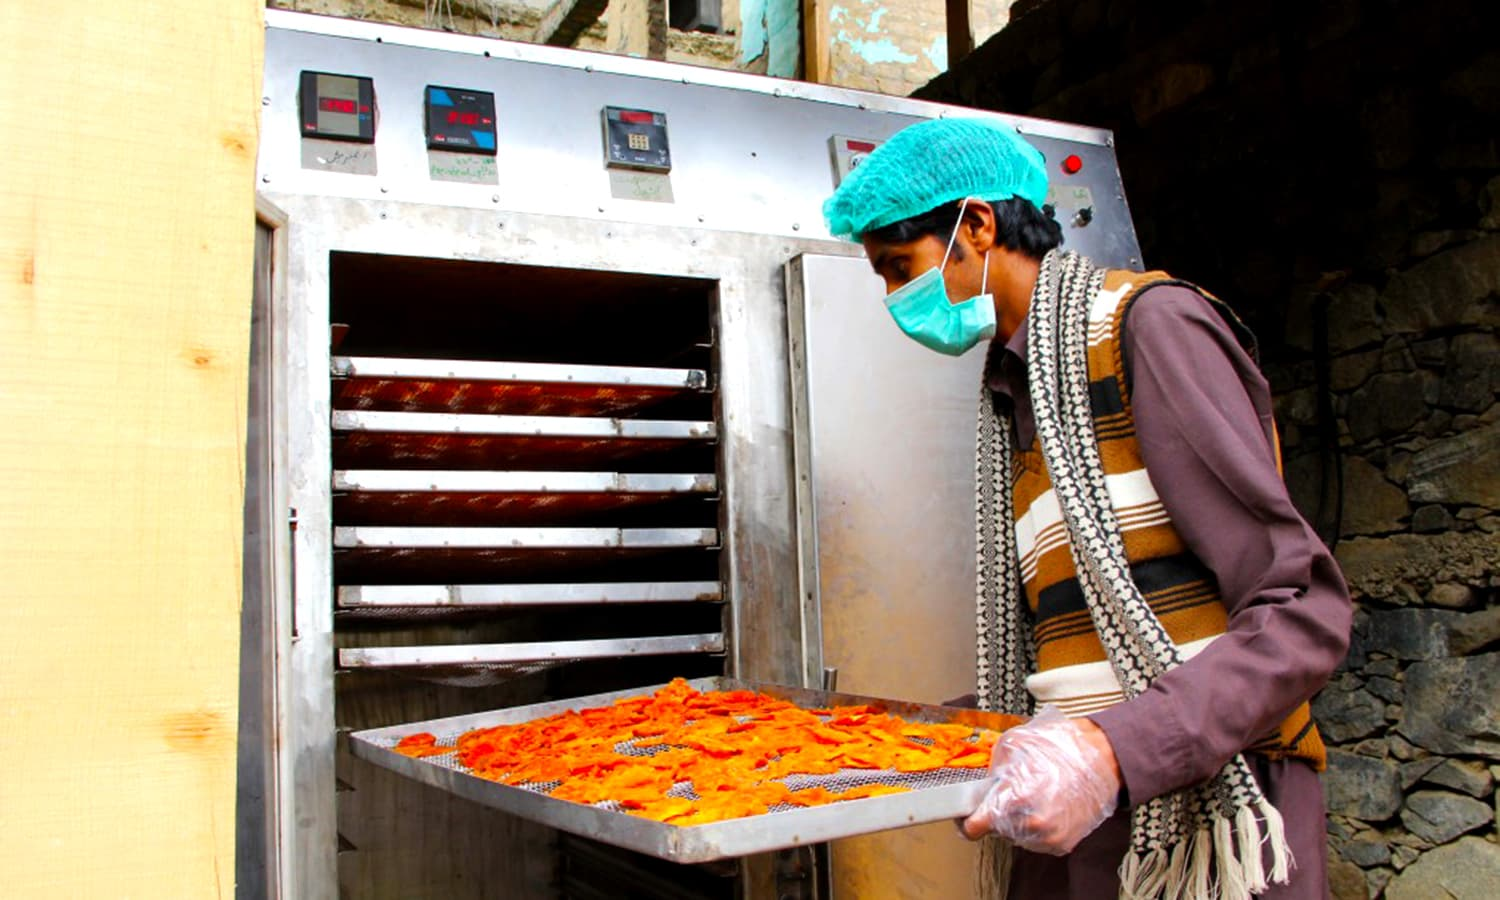 Farmer unloading dried persimmons from an electric dryer in Peochar, Swat. ─ Photo by Sarhad Rural Support Programme